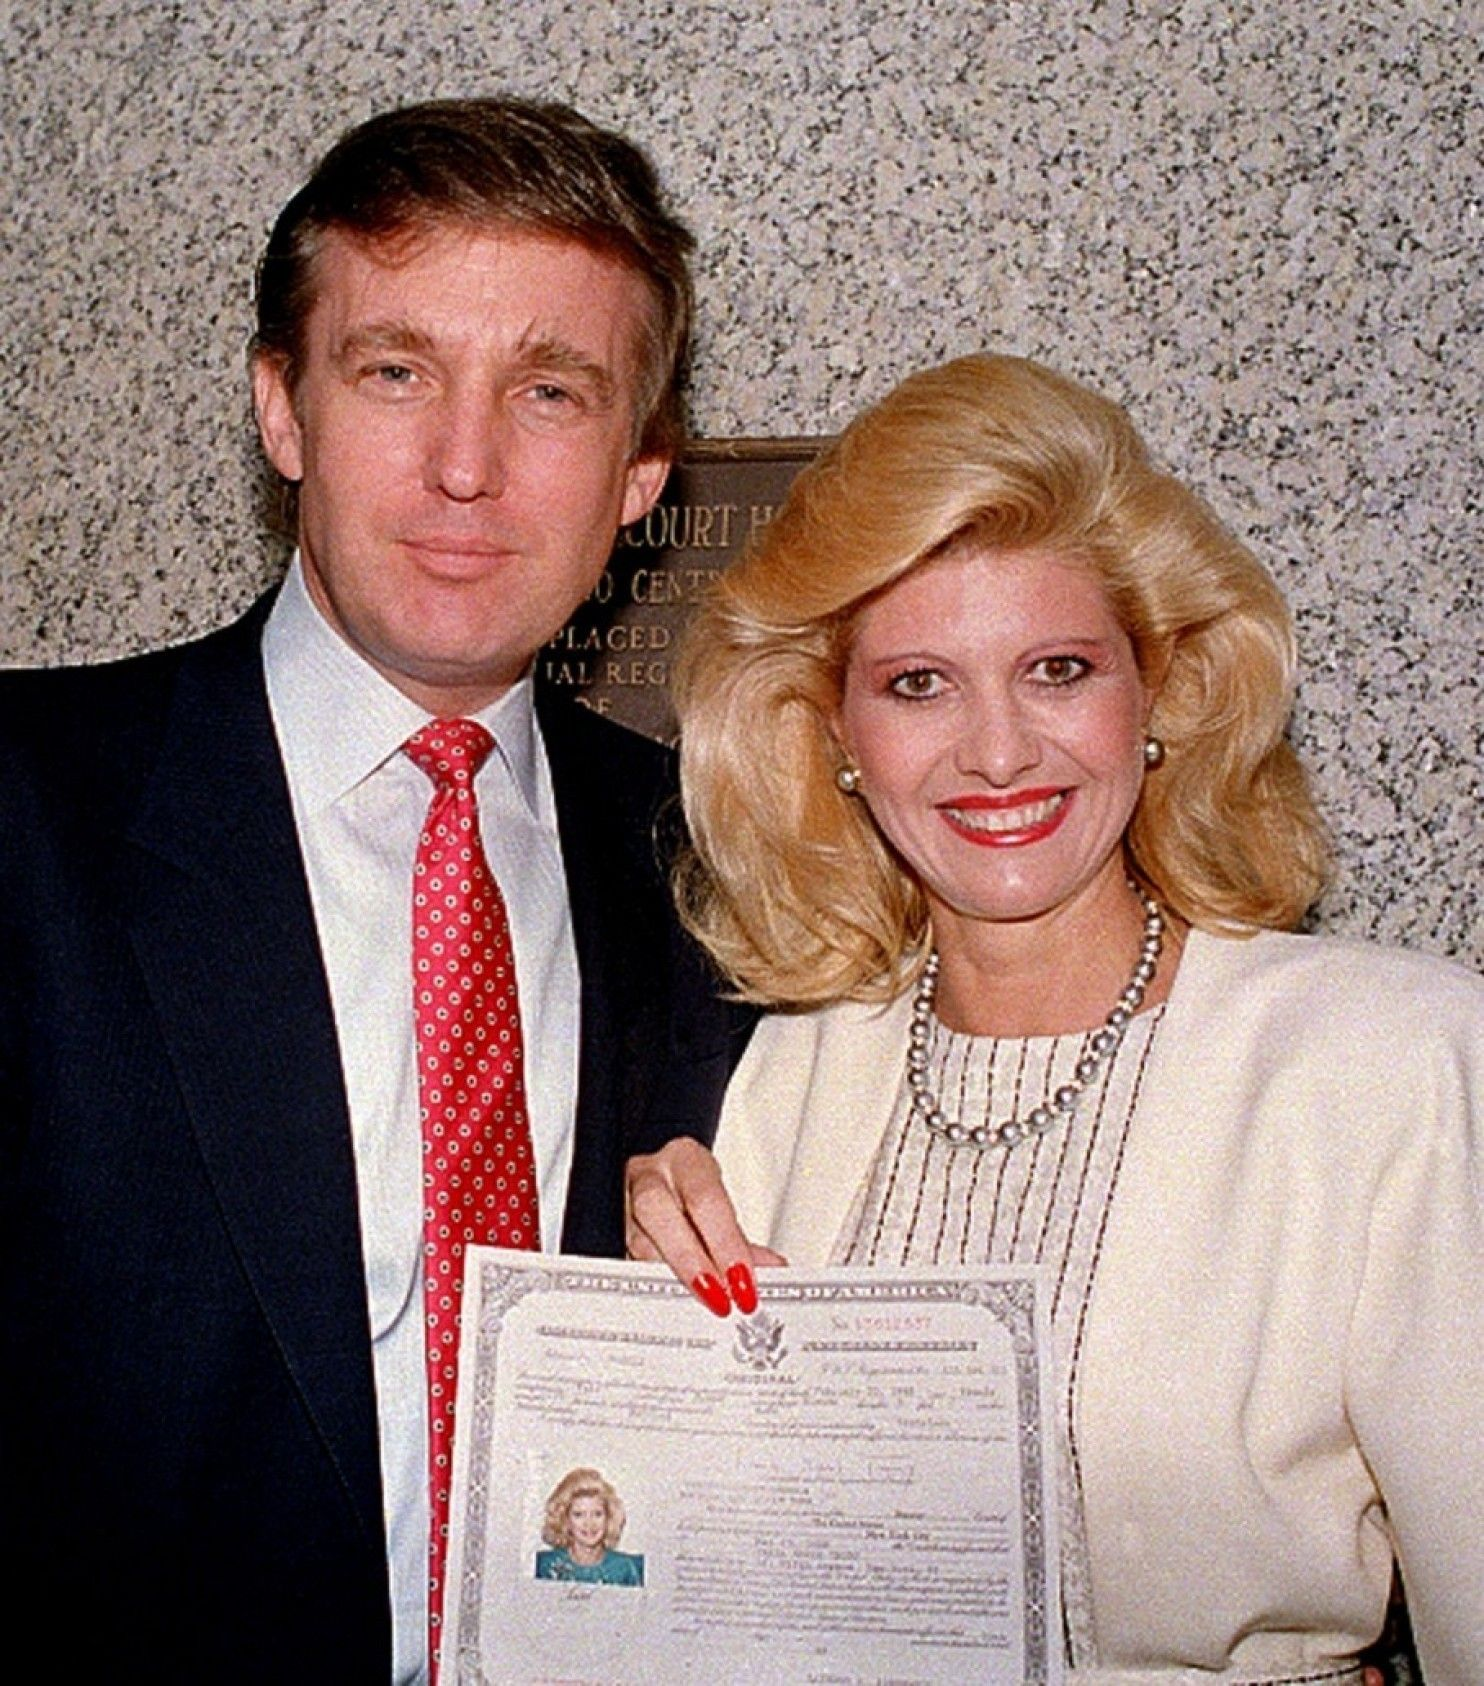 Donald And Ivana Trump In May 1988, After Her Us Citizenship Ceremony